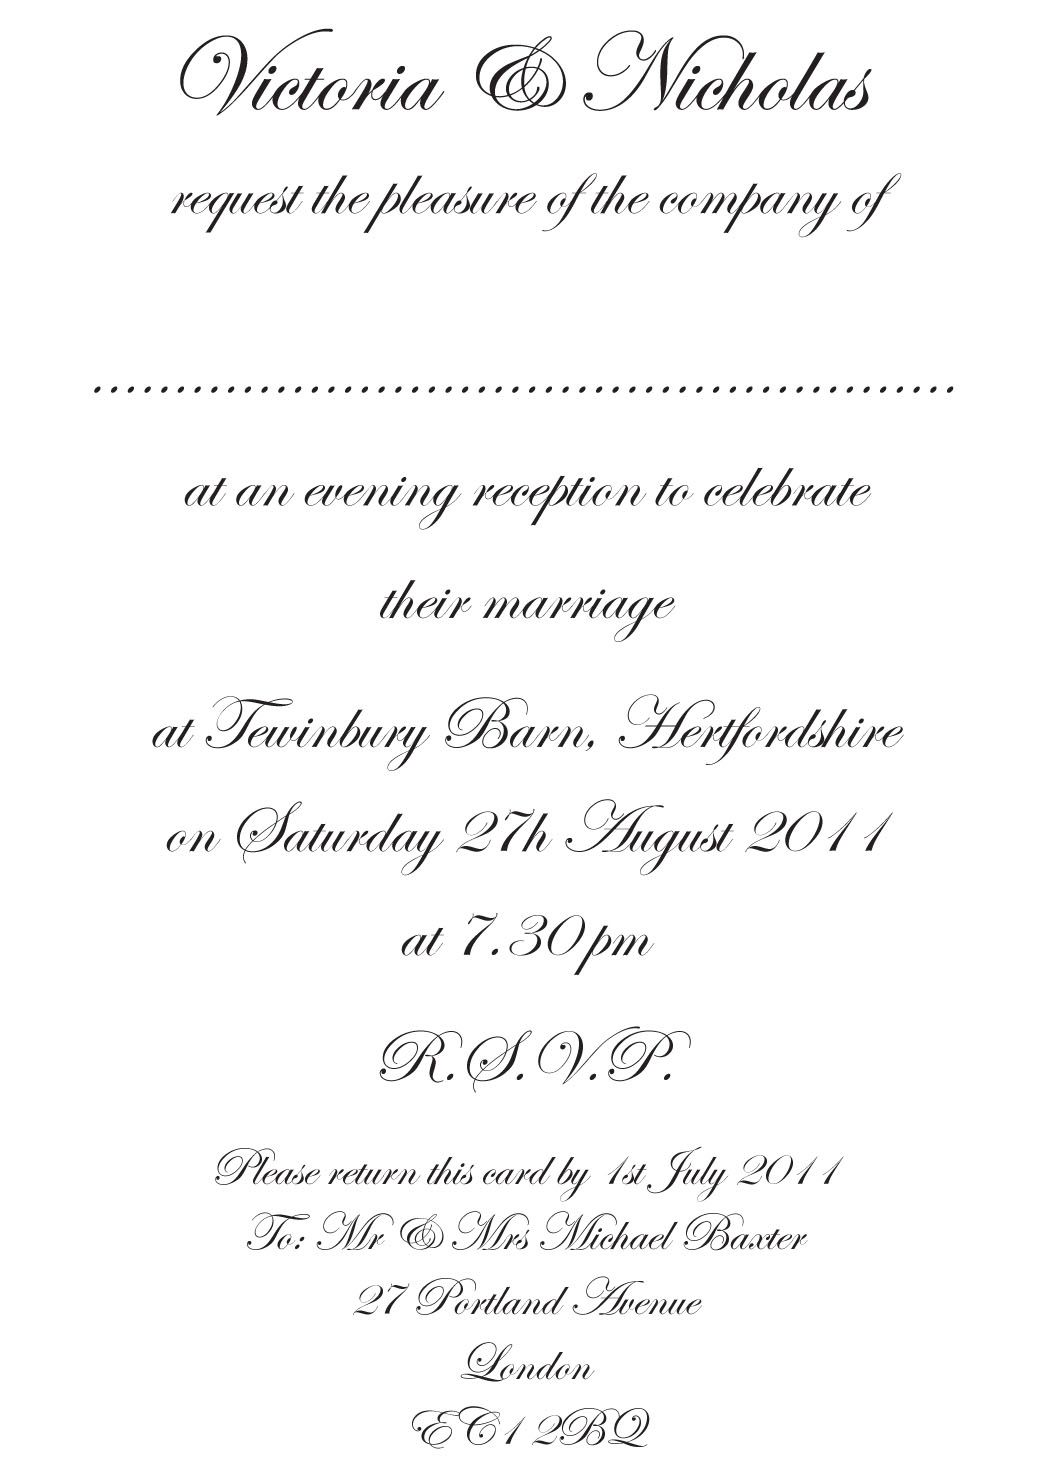 wedding invitations examples Formal Wedding Invitations Wording for Both Parents Invitations Pinterest Cards Invitation wording and Wedding invitation wording